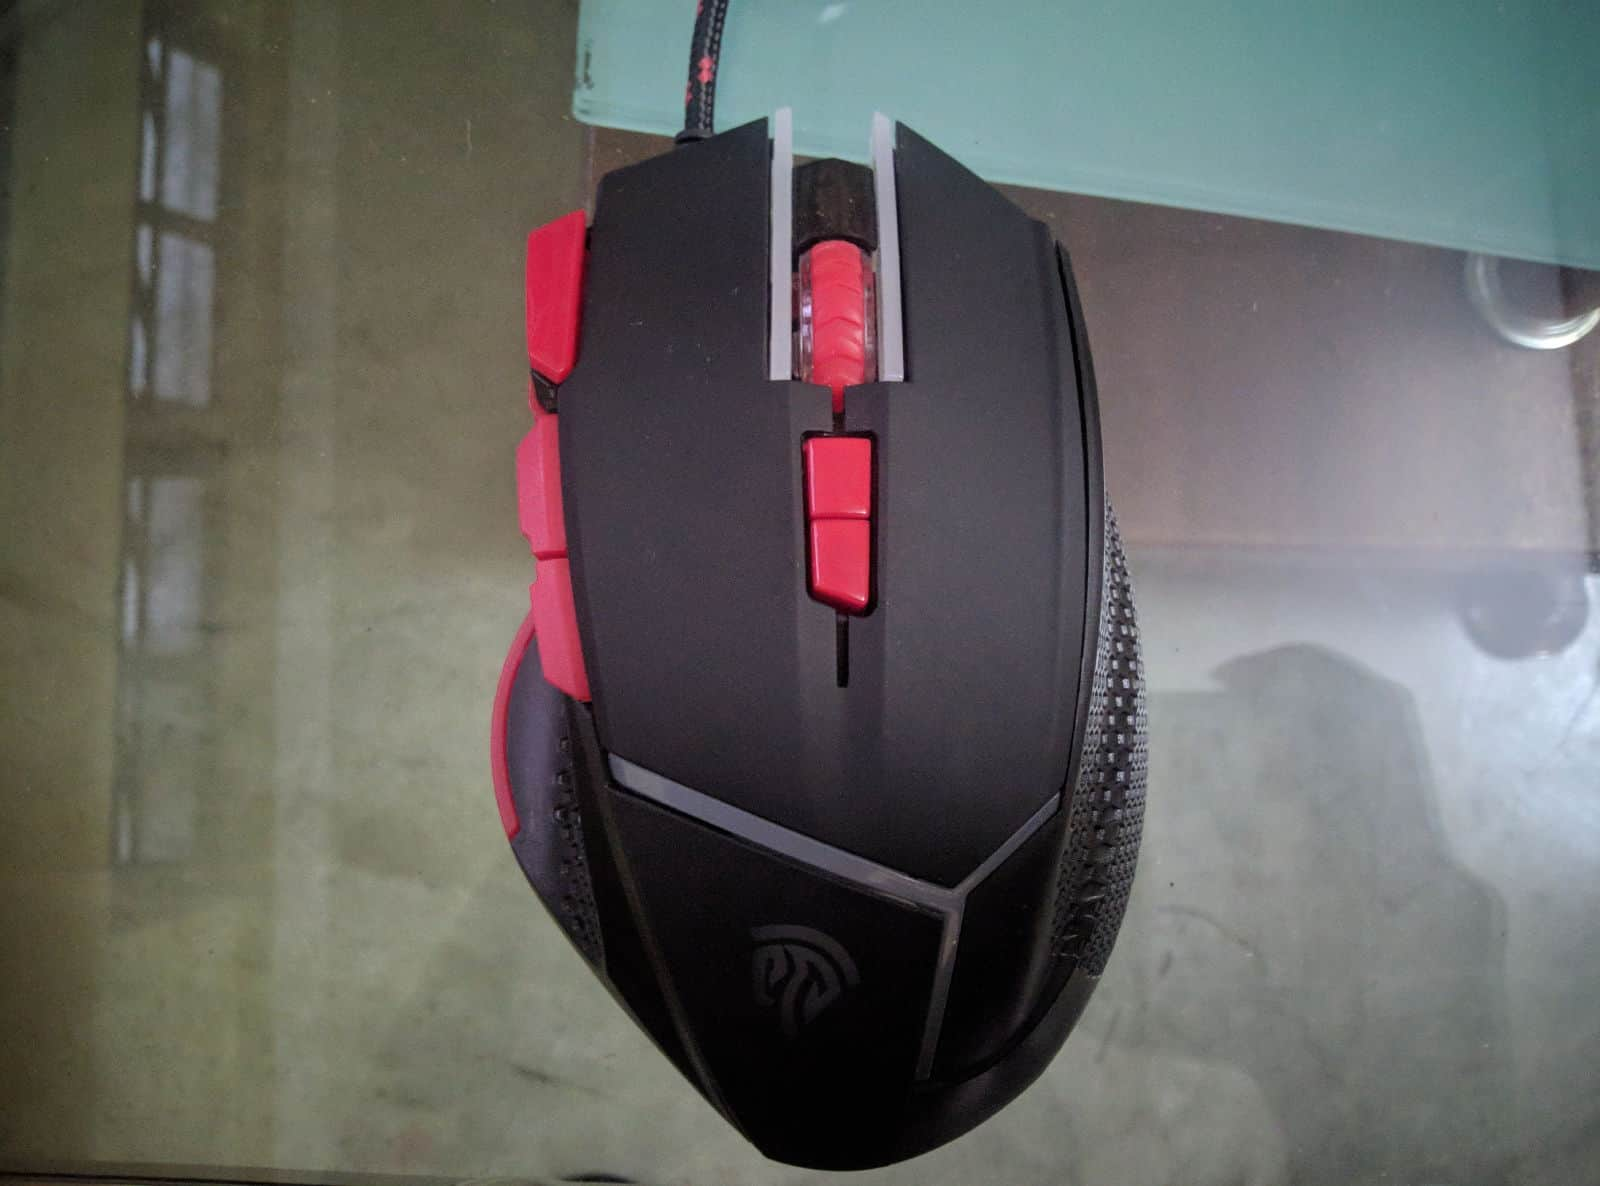 EasySMX V18 Gaming Mouse Review - 2